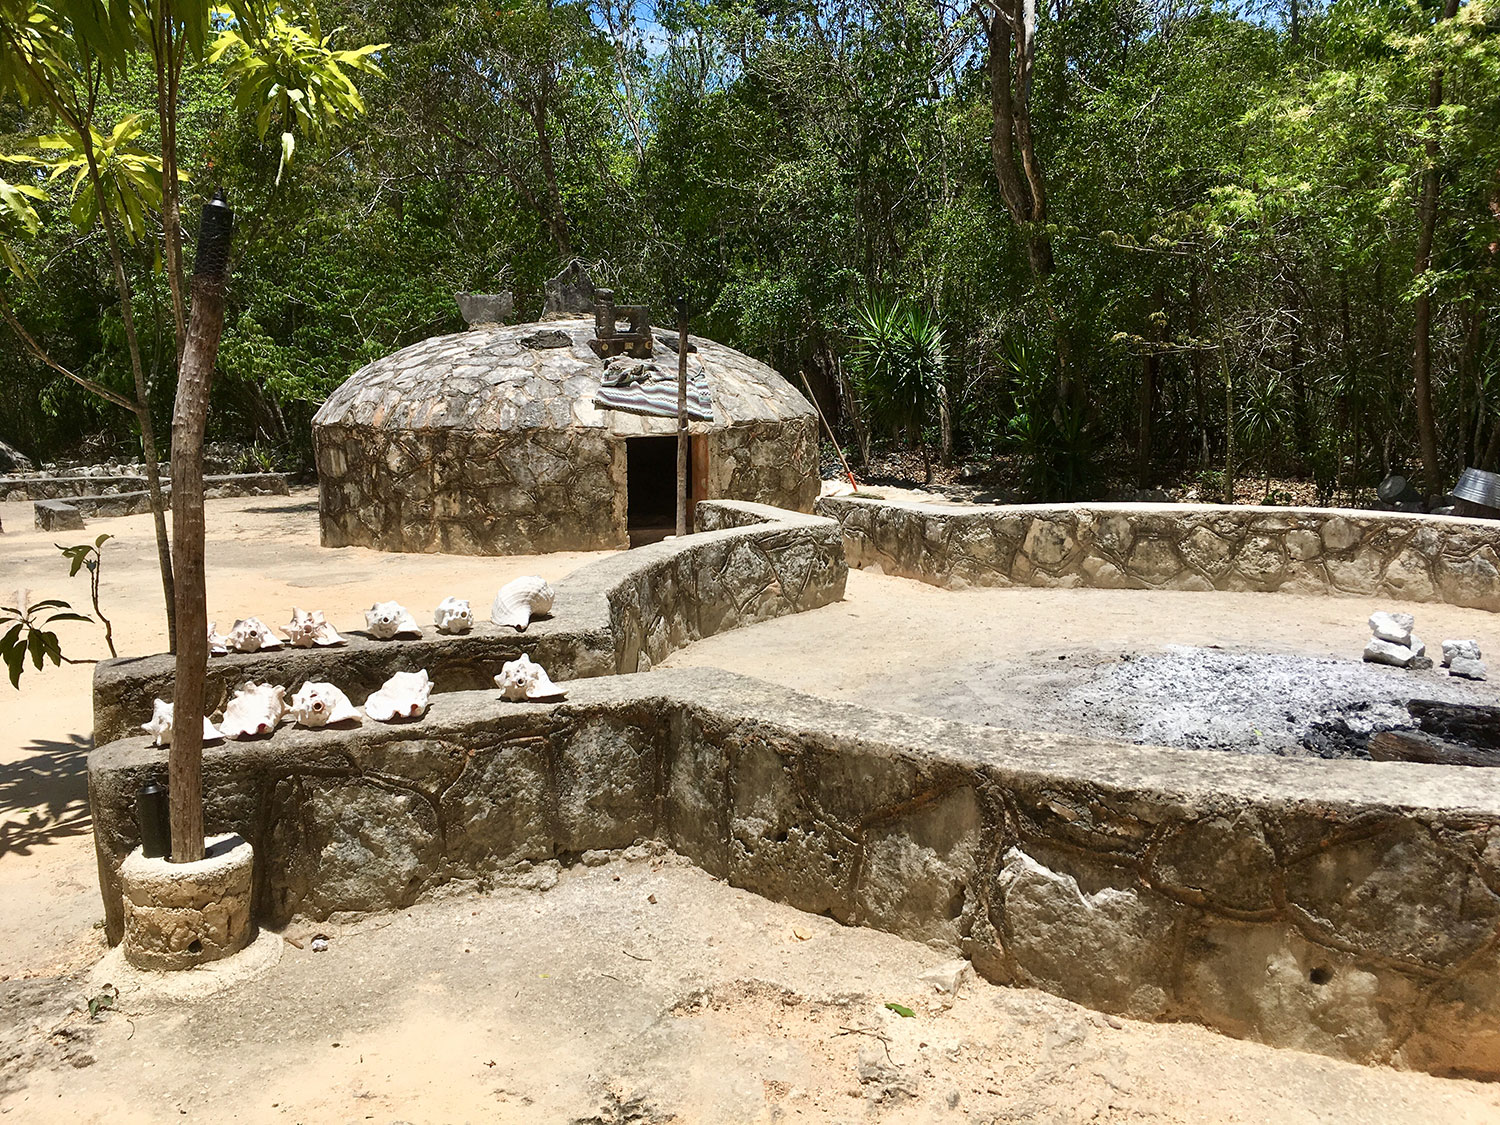 The temazcal 'igloo' and the round enclosure for the bonfire.